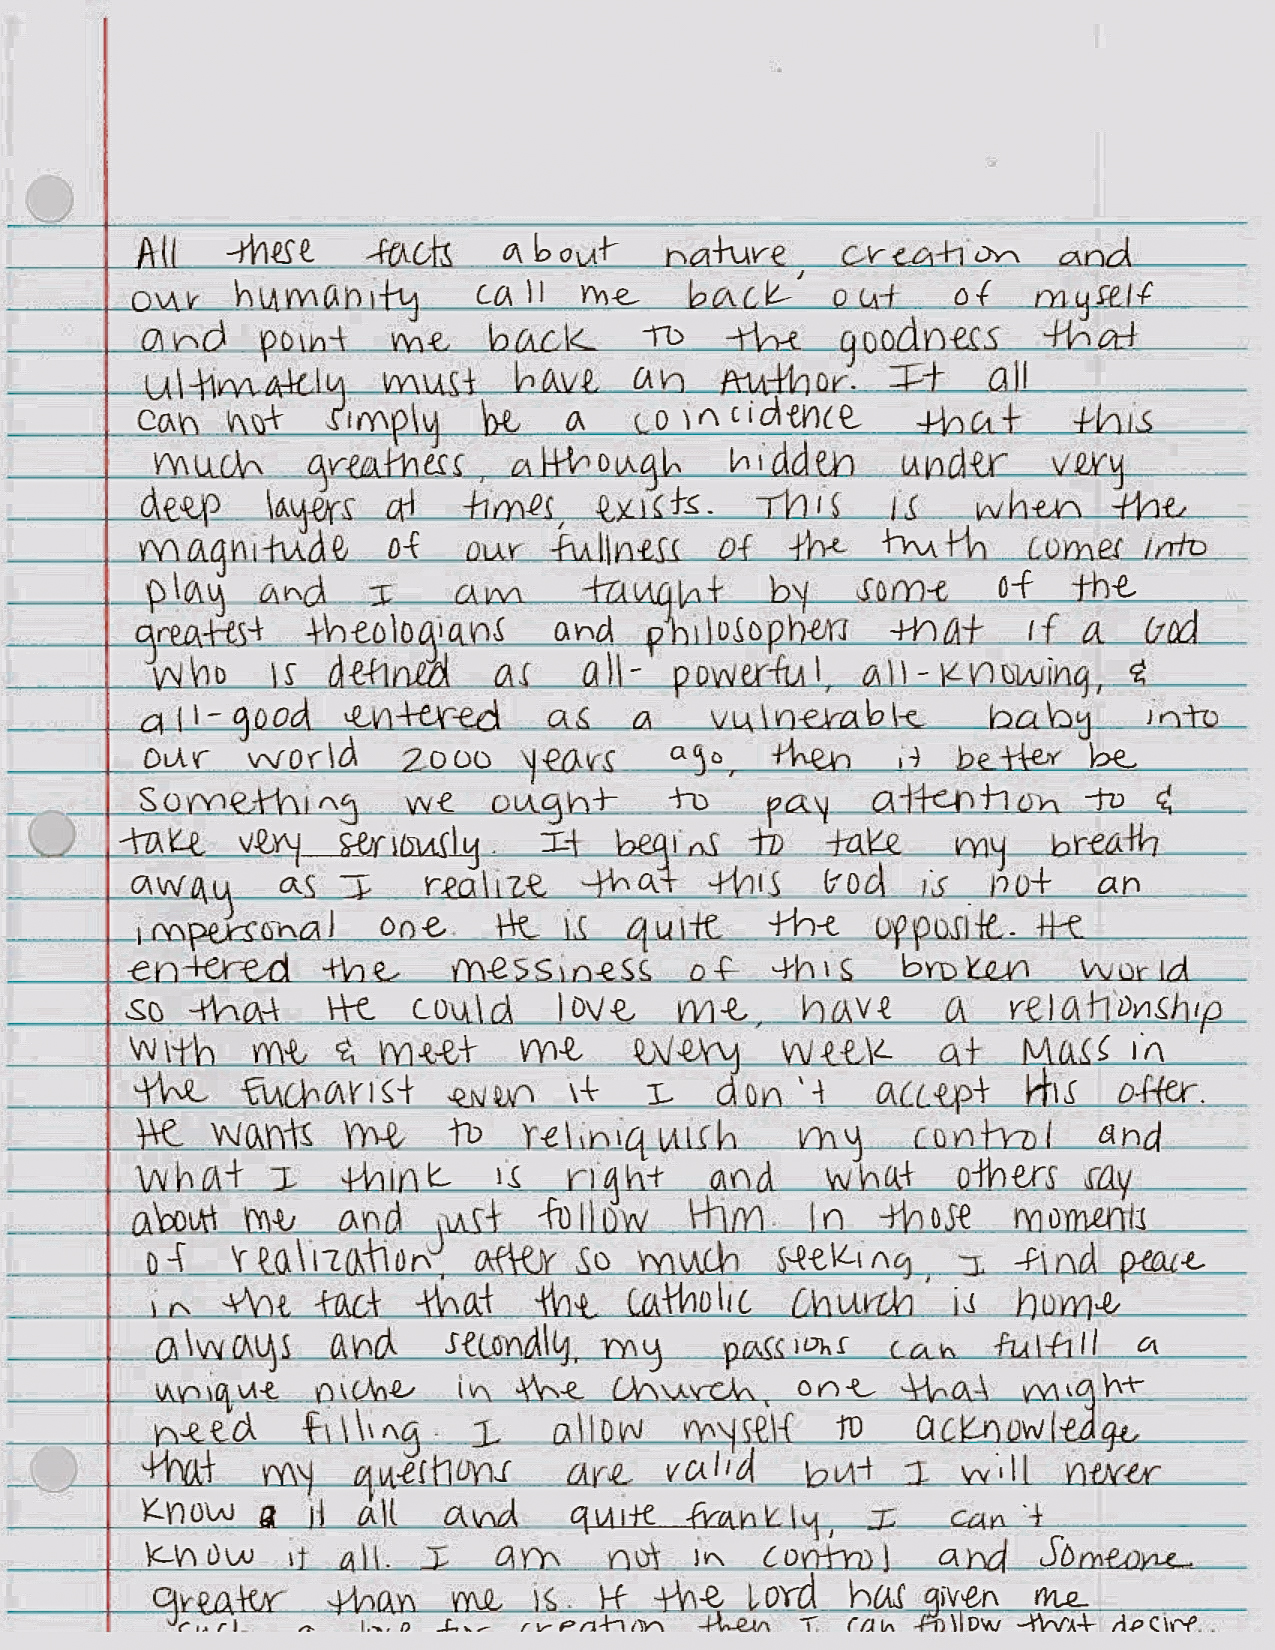 The-Catholic-Woman Letters-37.jpg